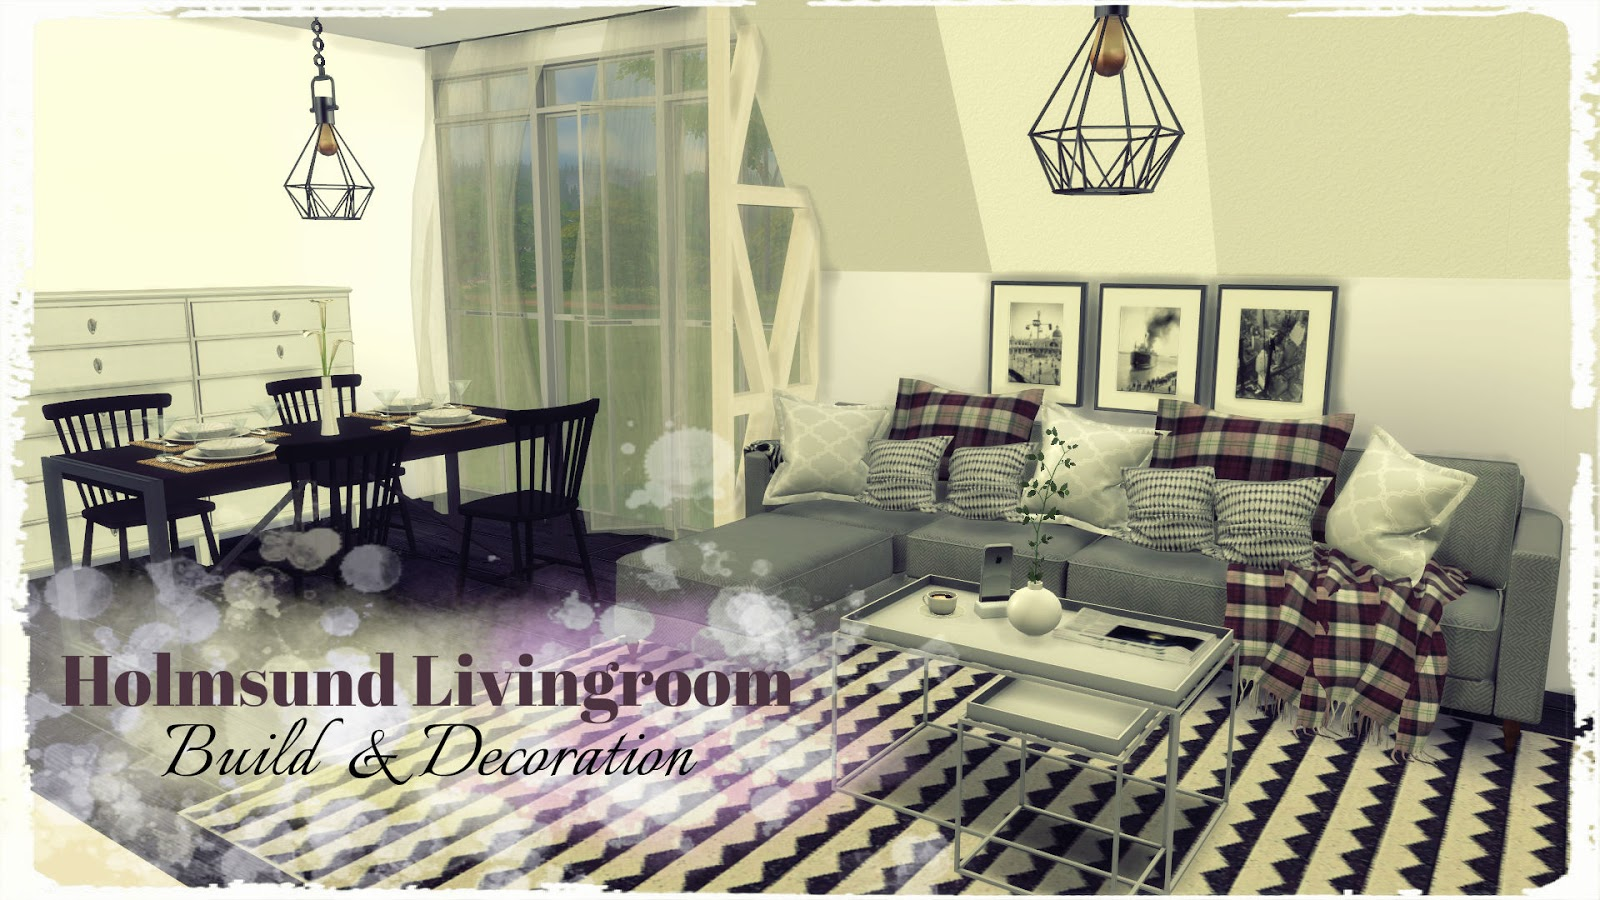 Sims 4 holmsund livingroom build decoration dinha for Living room 4 pics 1 word